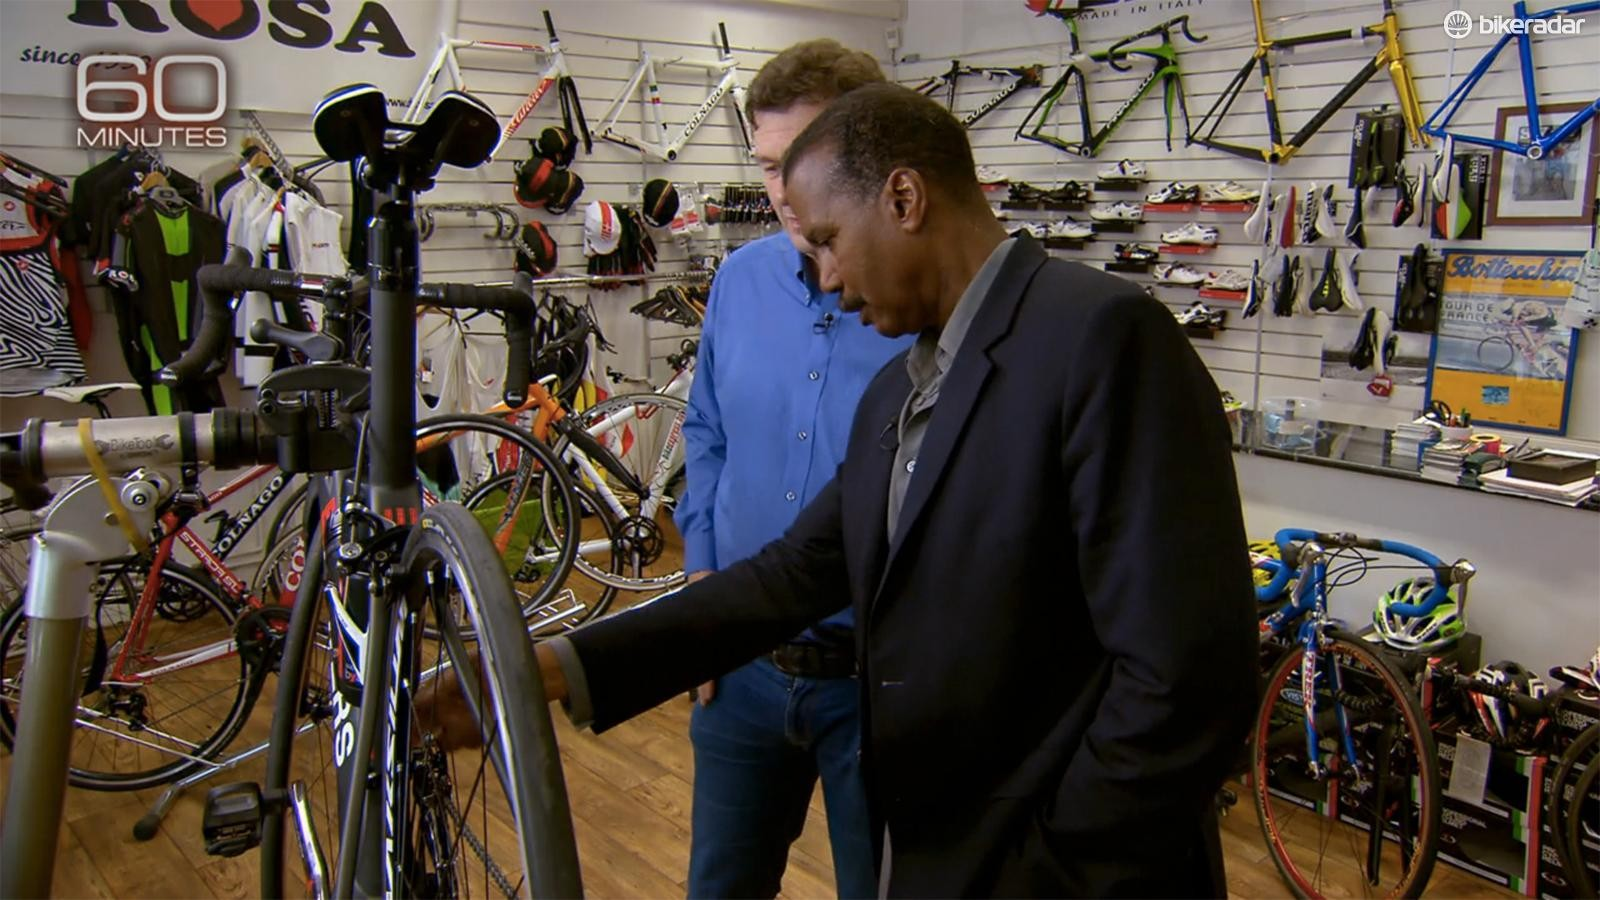 60 Minutes recently investigated motorized doping in cycling